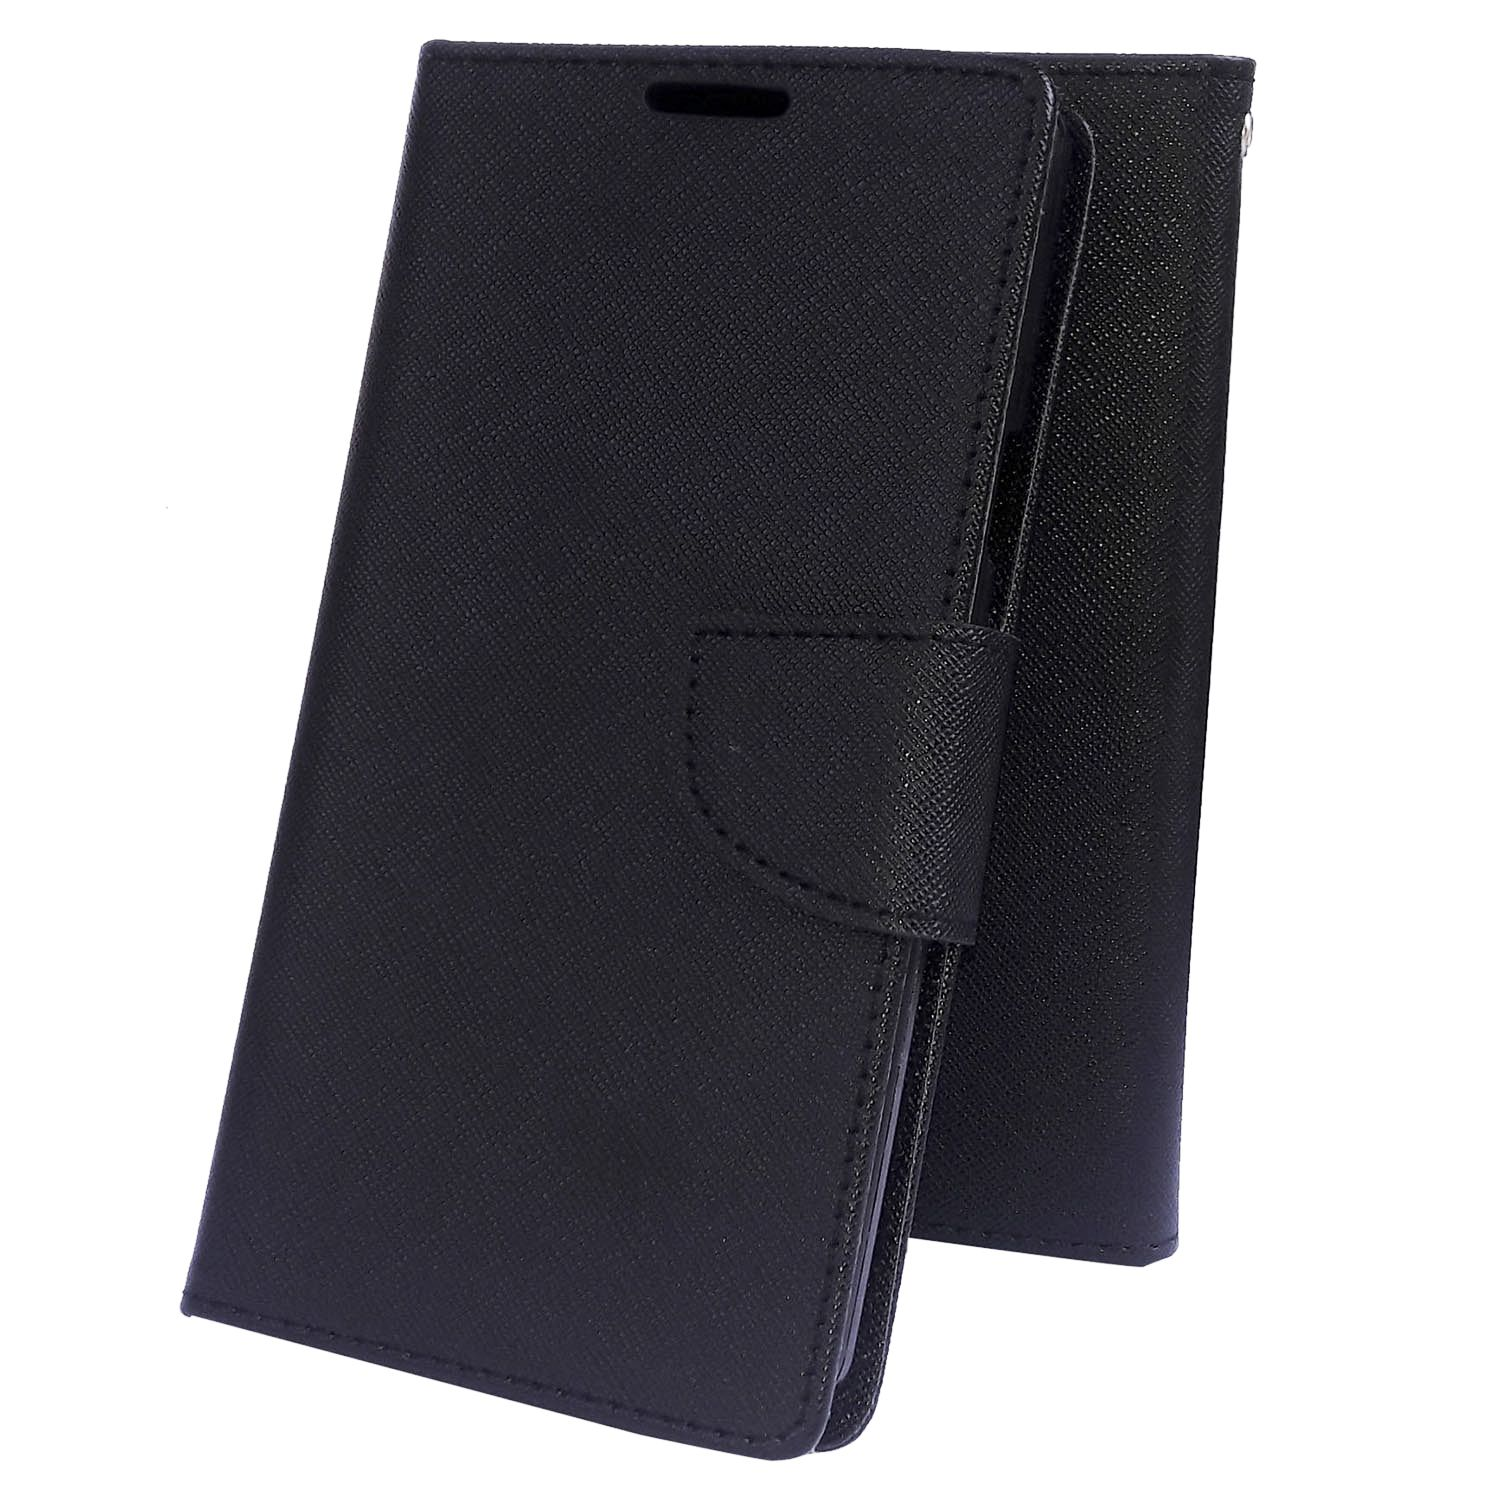 Samsung Galaxy Note 3 neo Flip Cover by Moblo - Black